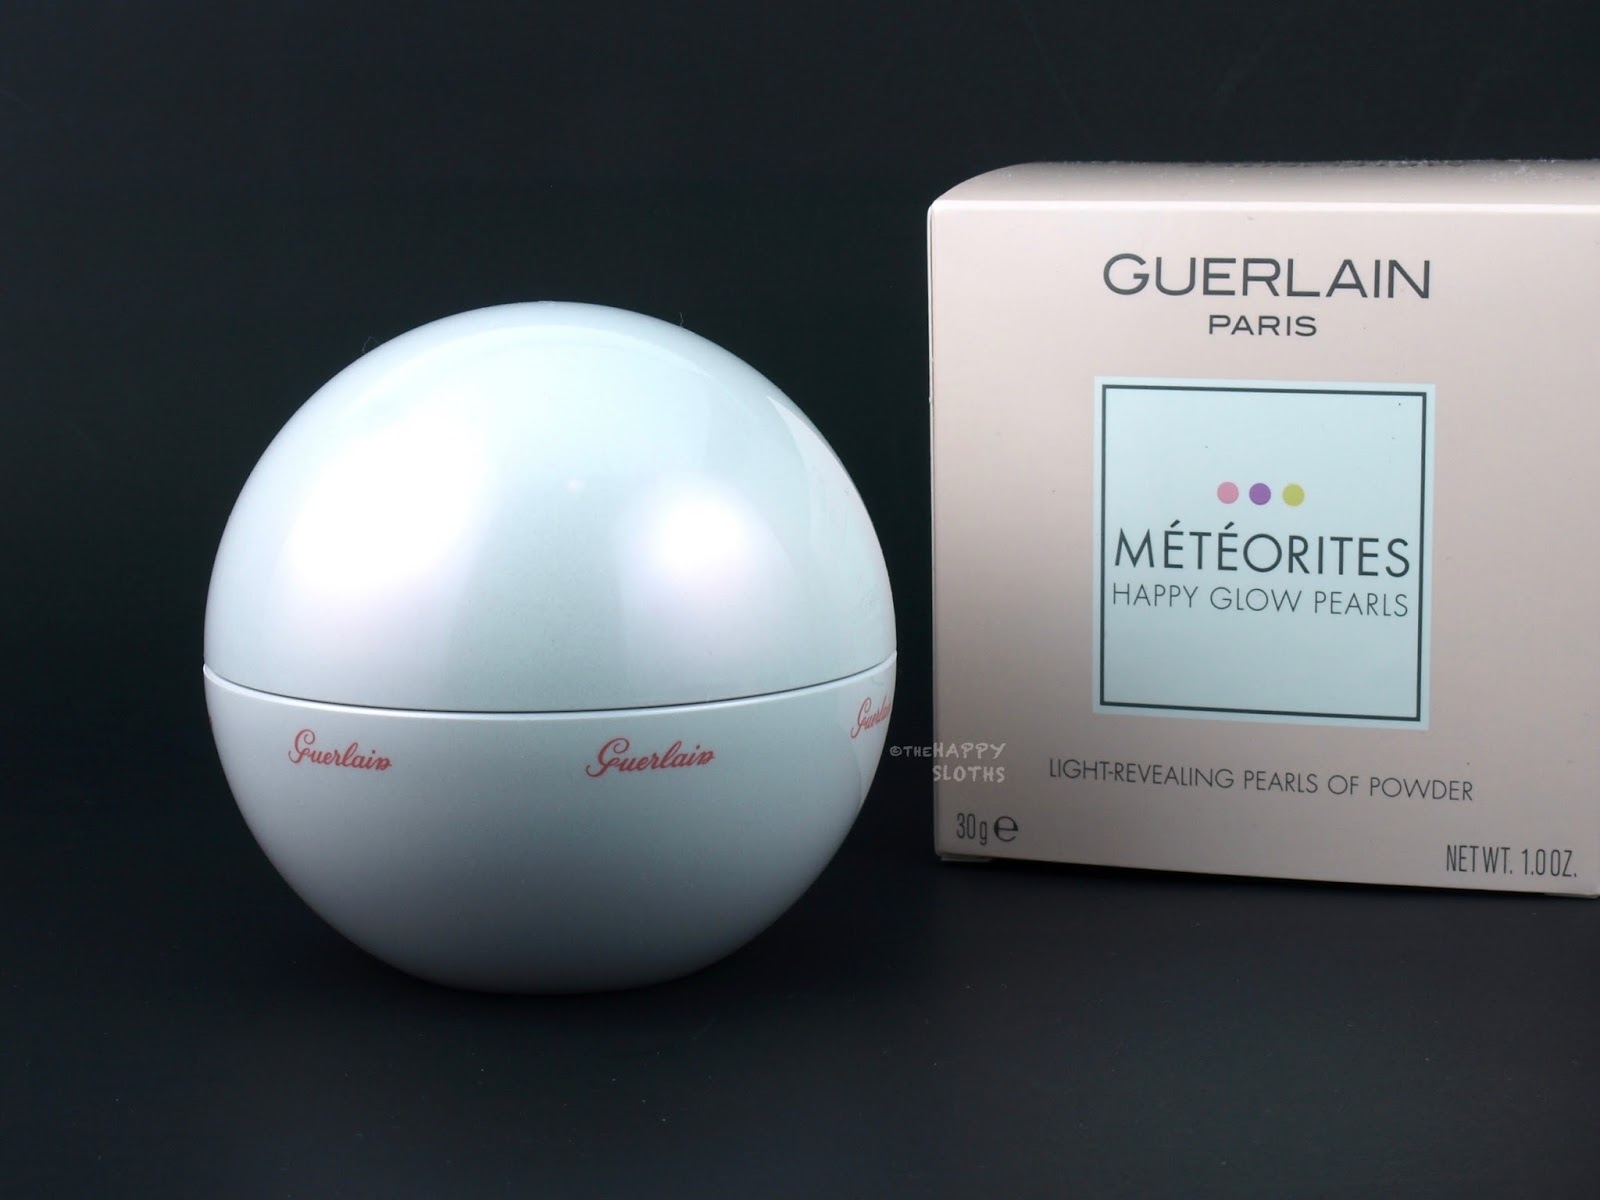 Guerlain Spring 2017 Meteorites Happy Glow Pearls: Review and Swatches